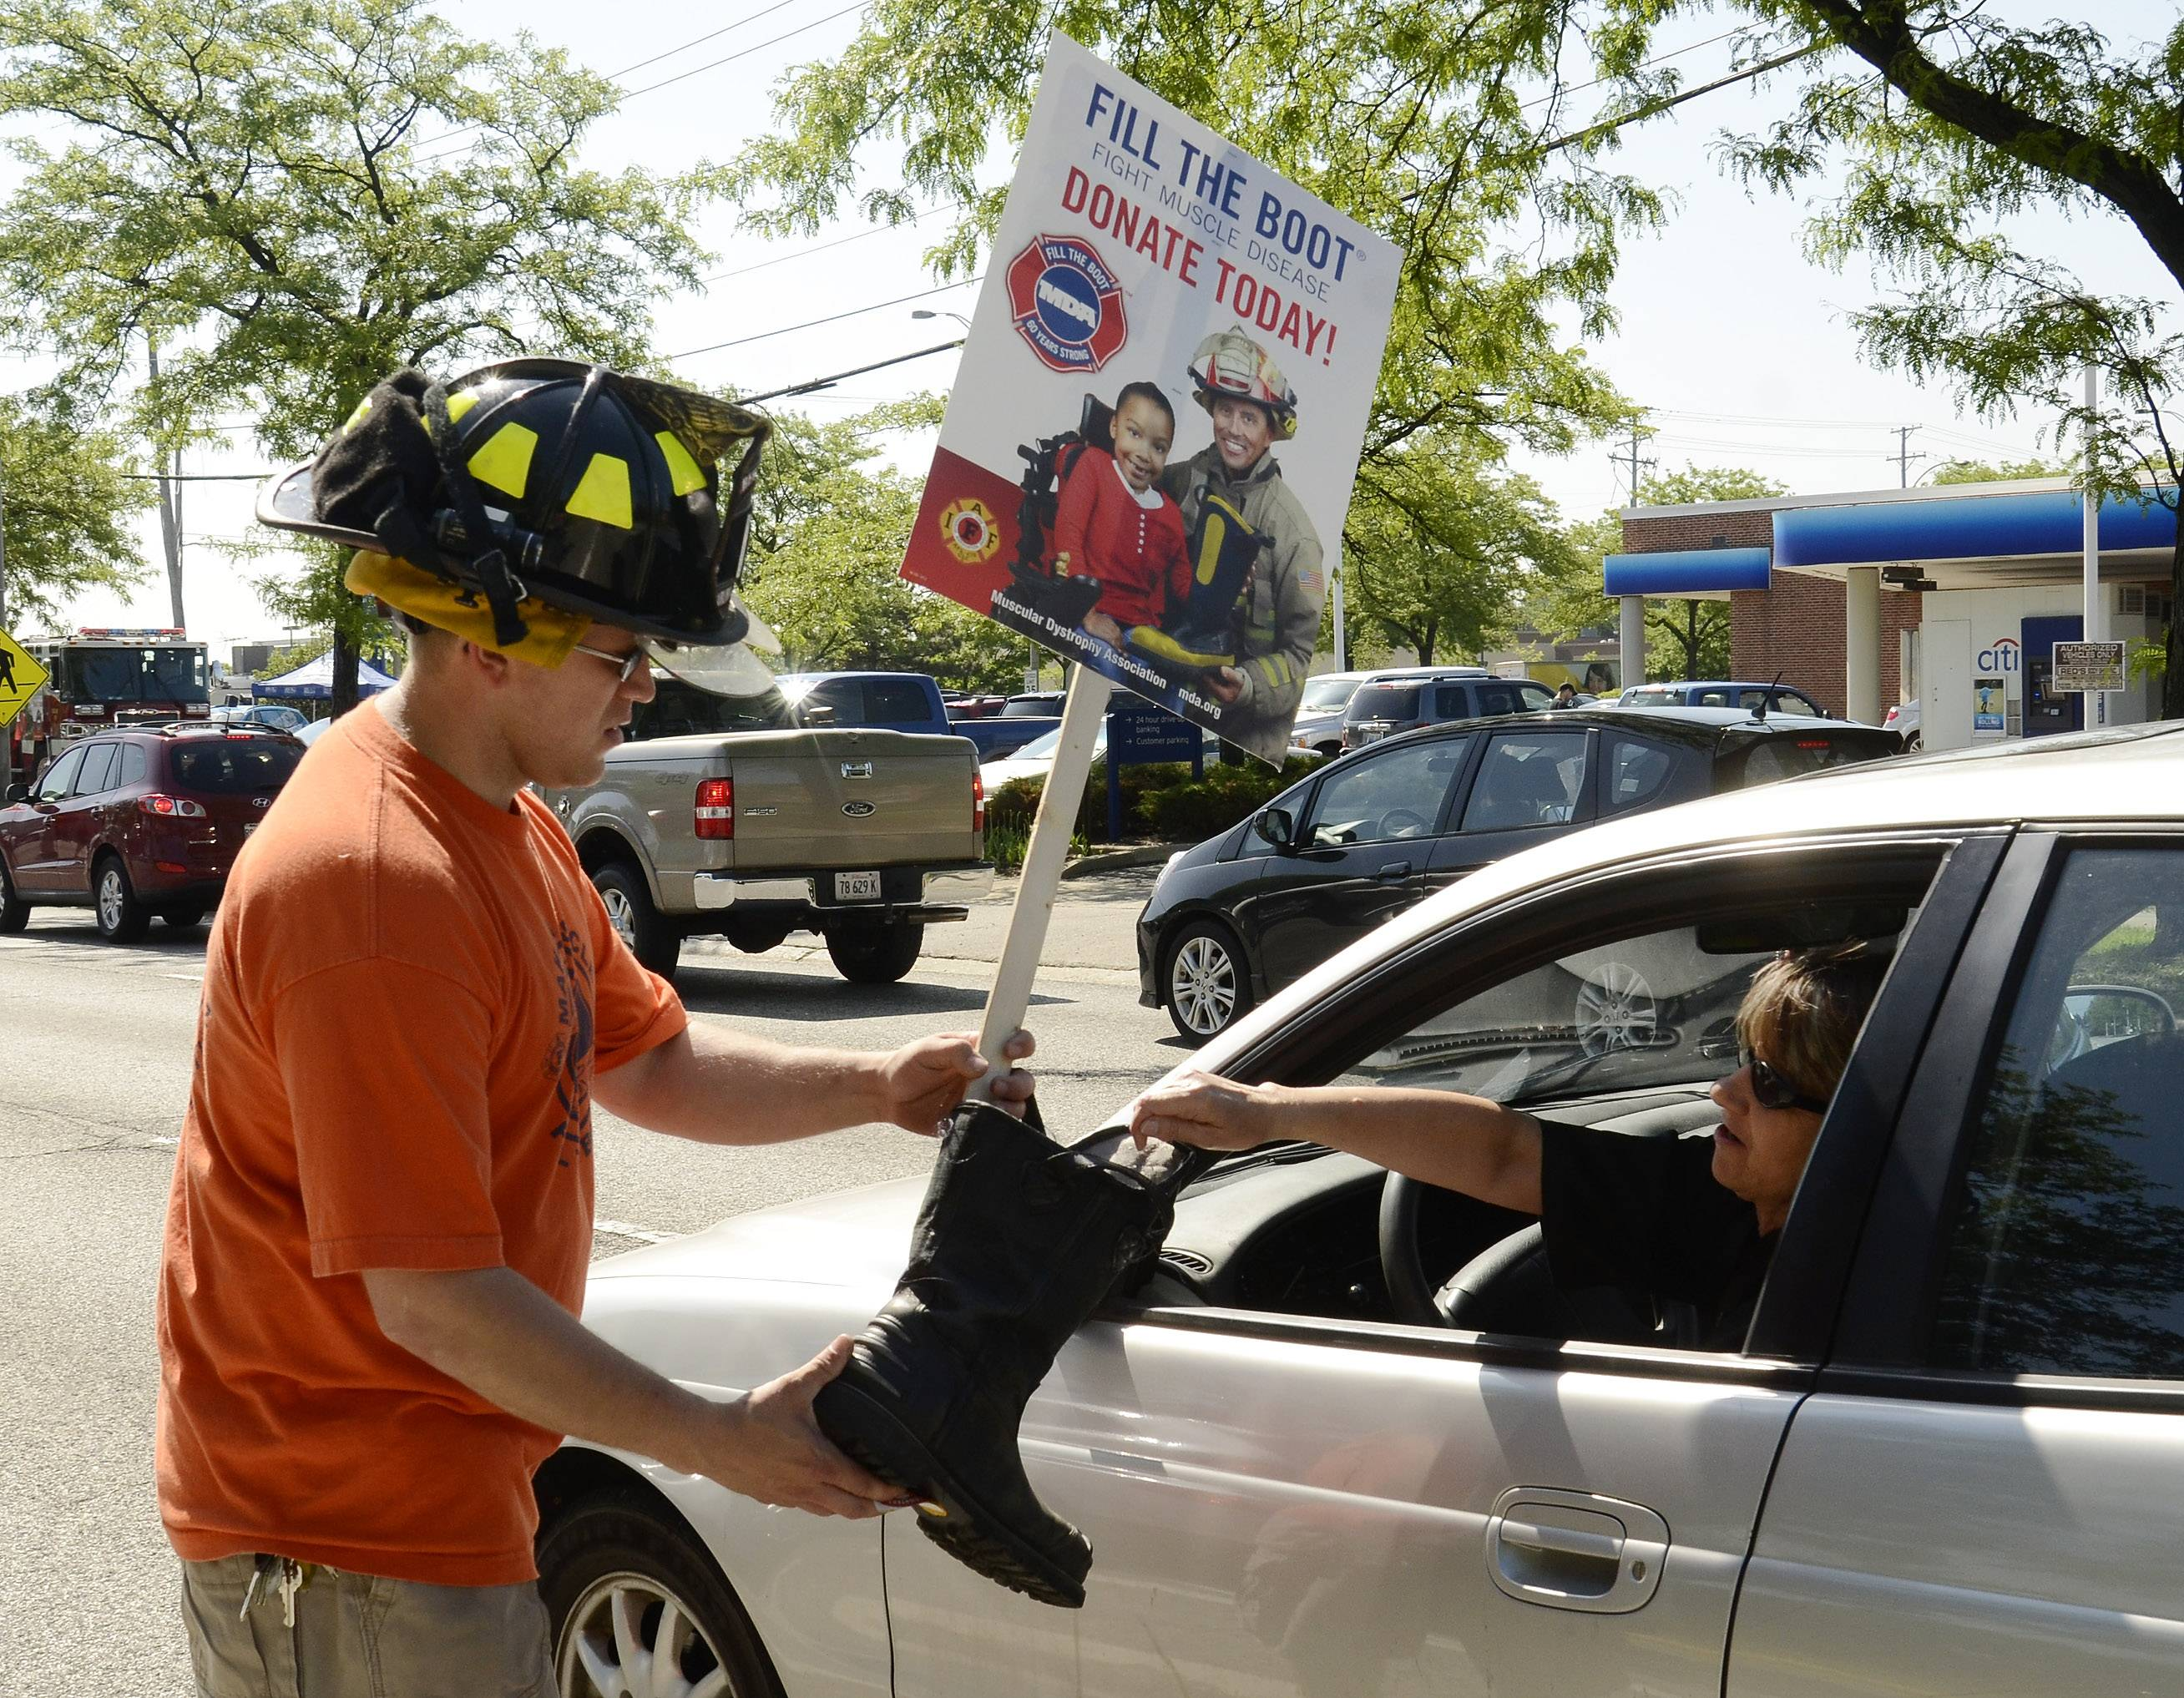 Jason Kedrock gets a donation from Debbie Chuk of Palatine during the Arlington Heights firefighters Fill the Boot campaign Friday at the intersection of Palatine Road and Arlington Heights Roads.